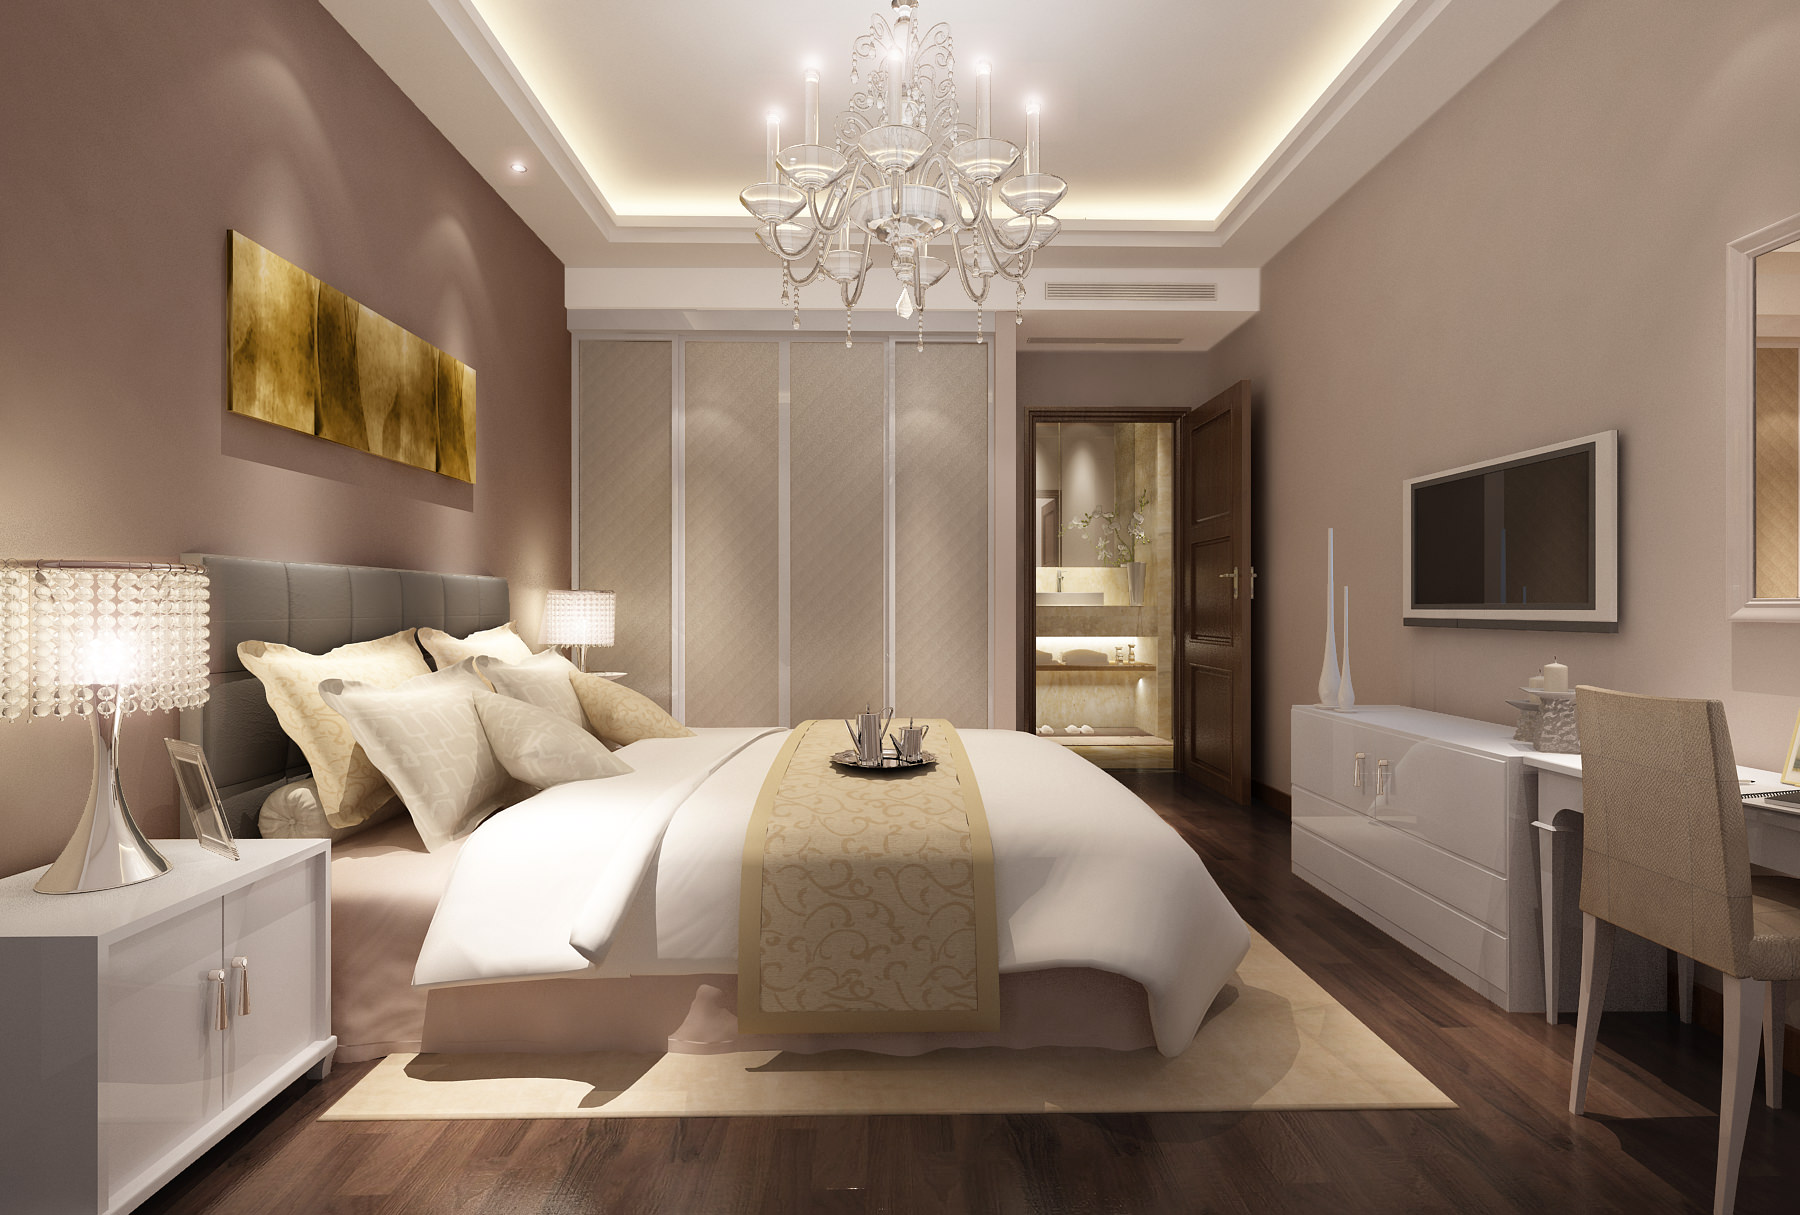 301 moved permanently for Bedroom designs 3d model